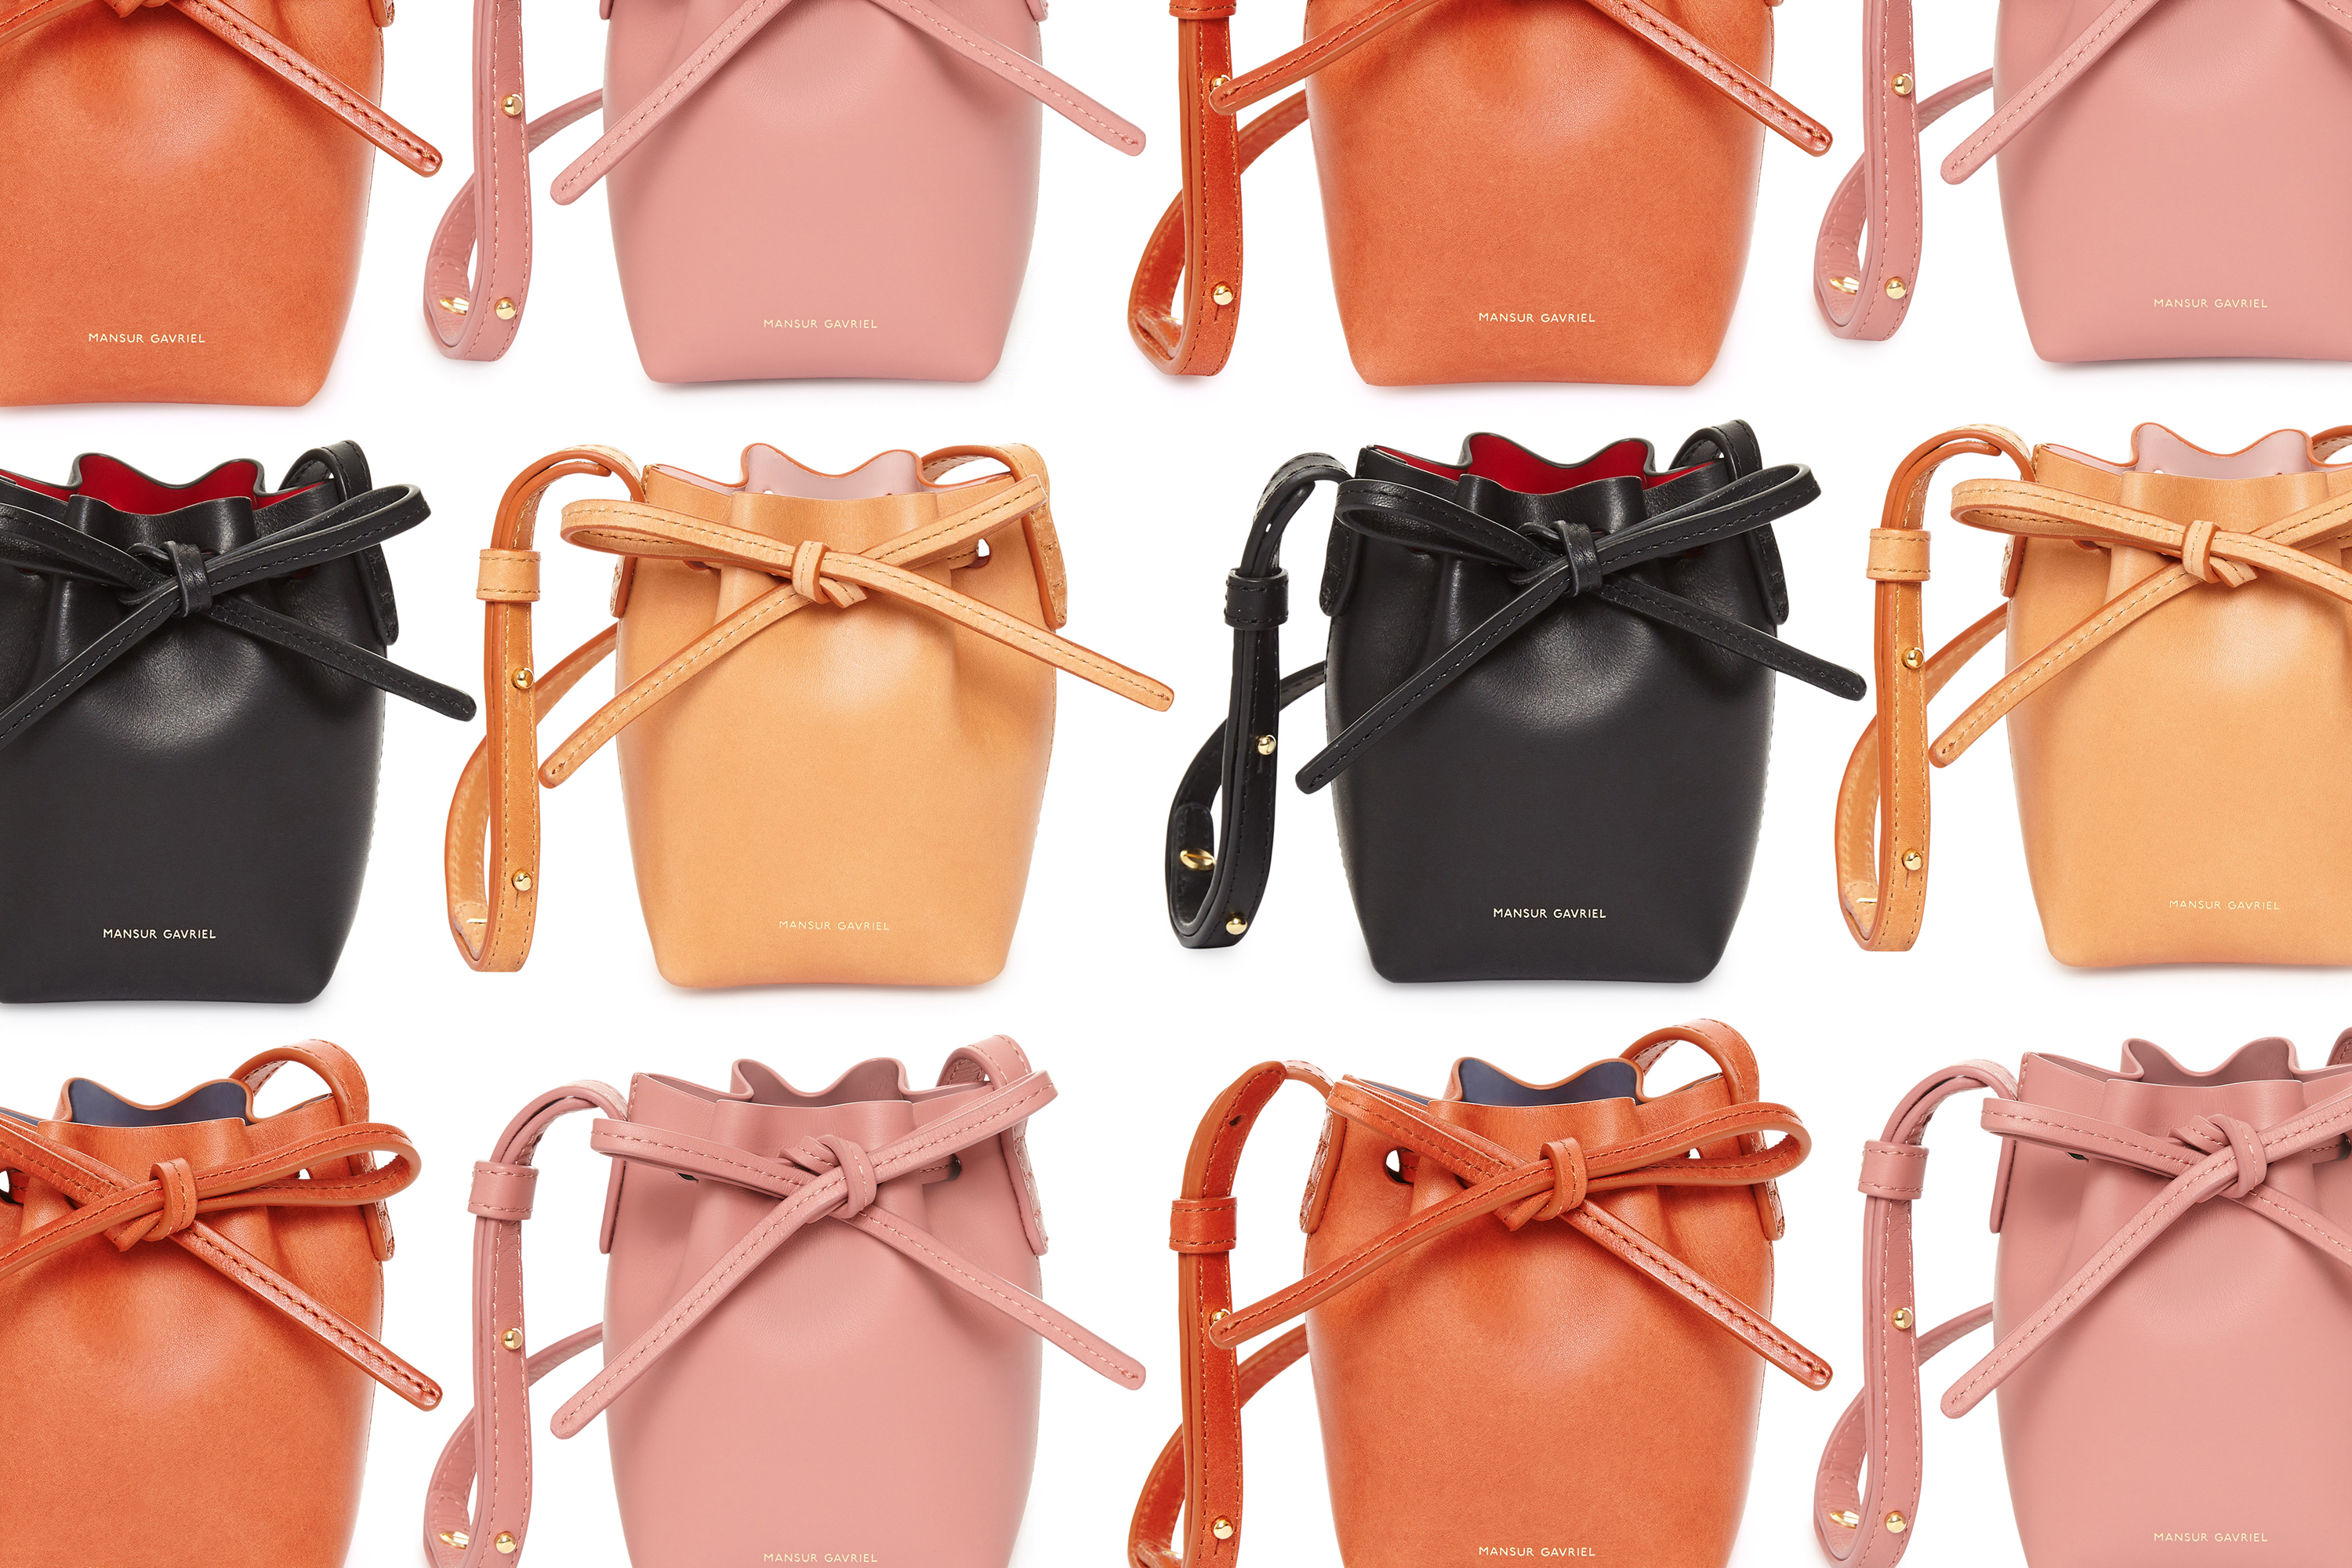 The baby bucket bag exclusive to Mansur Gavriel's forthcoming pop-up shop.